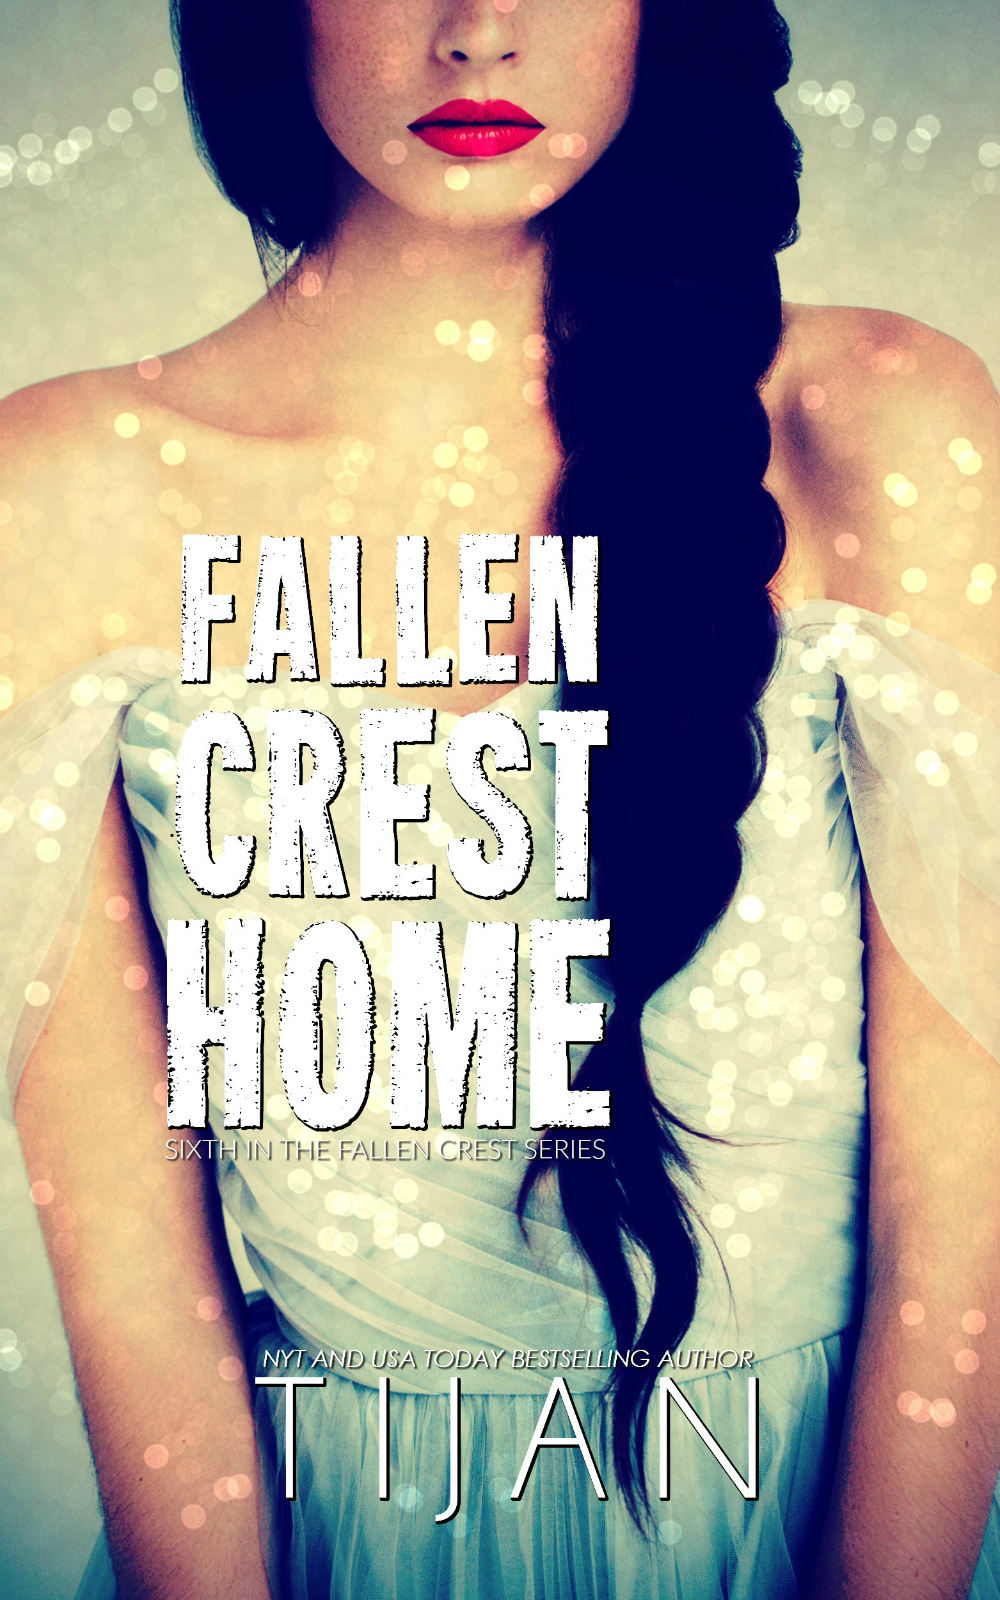 Boost of Fallen Crest Home (Fallen Crest #6) by Tijan